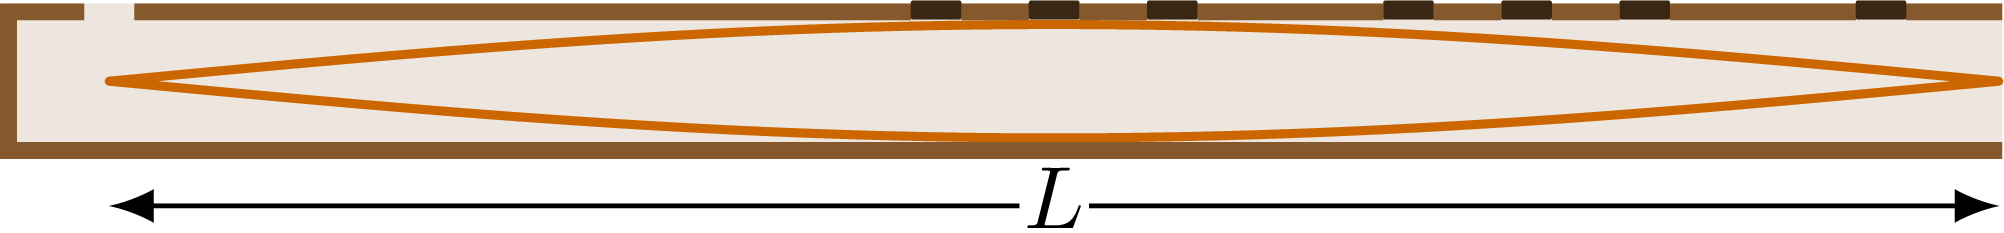 waves_standing_flute-001.png